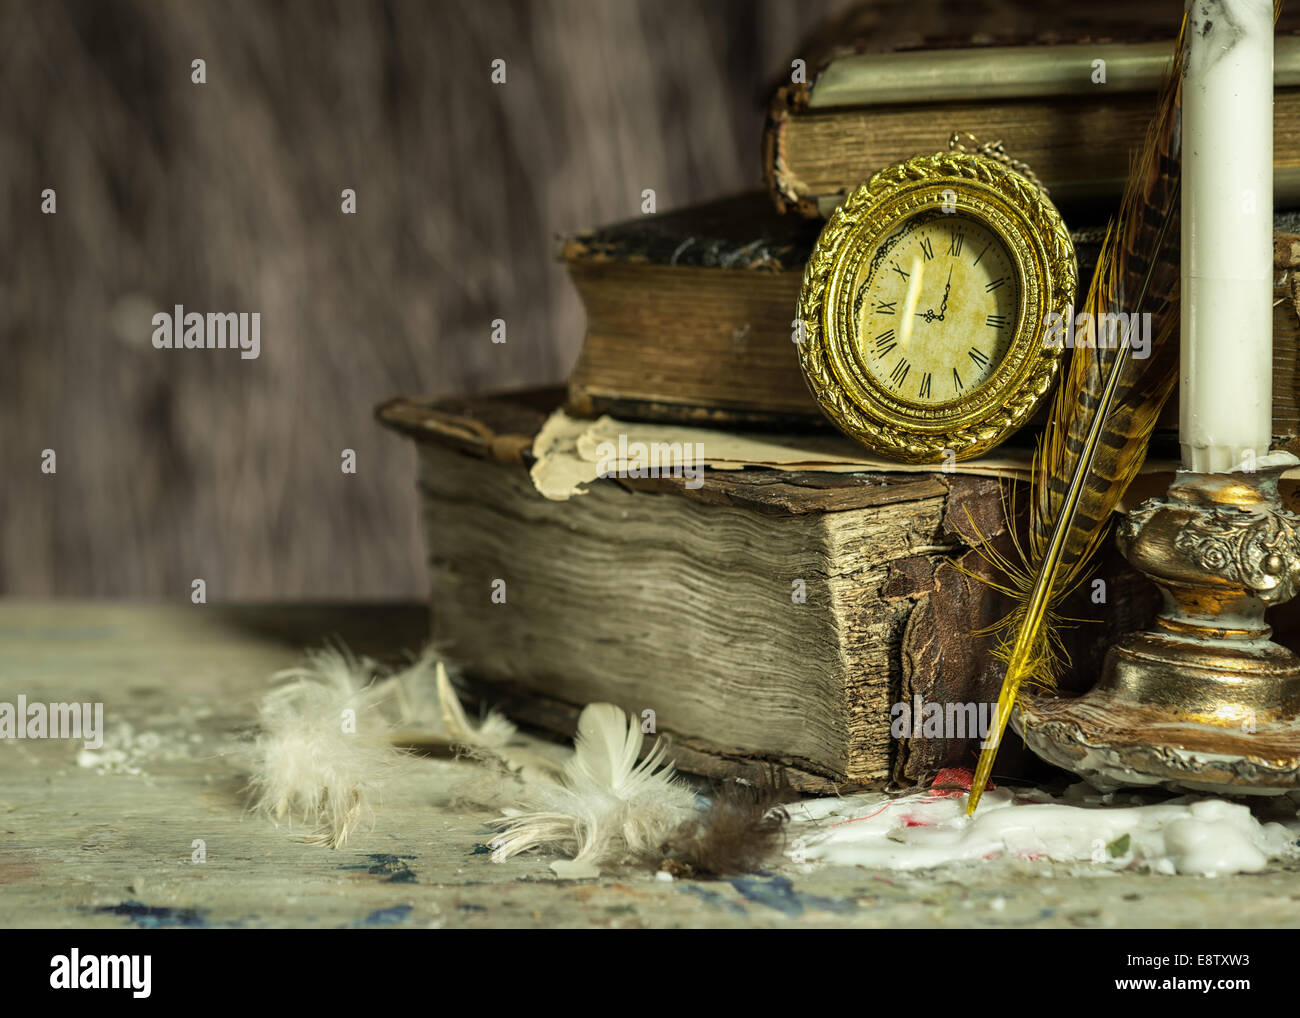 Old books, antique clock, candle in a candlestick and quill on wooden background. Vintage postcard. - Stock Image